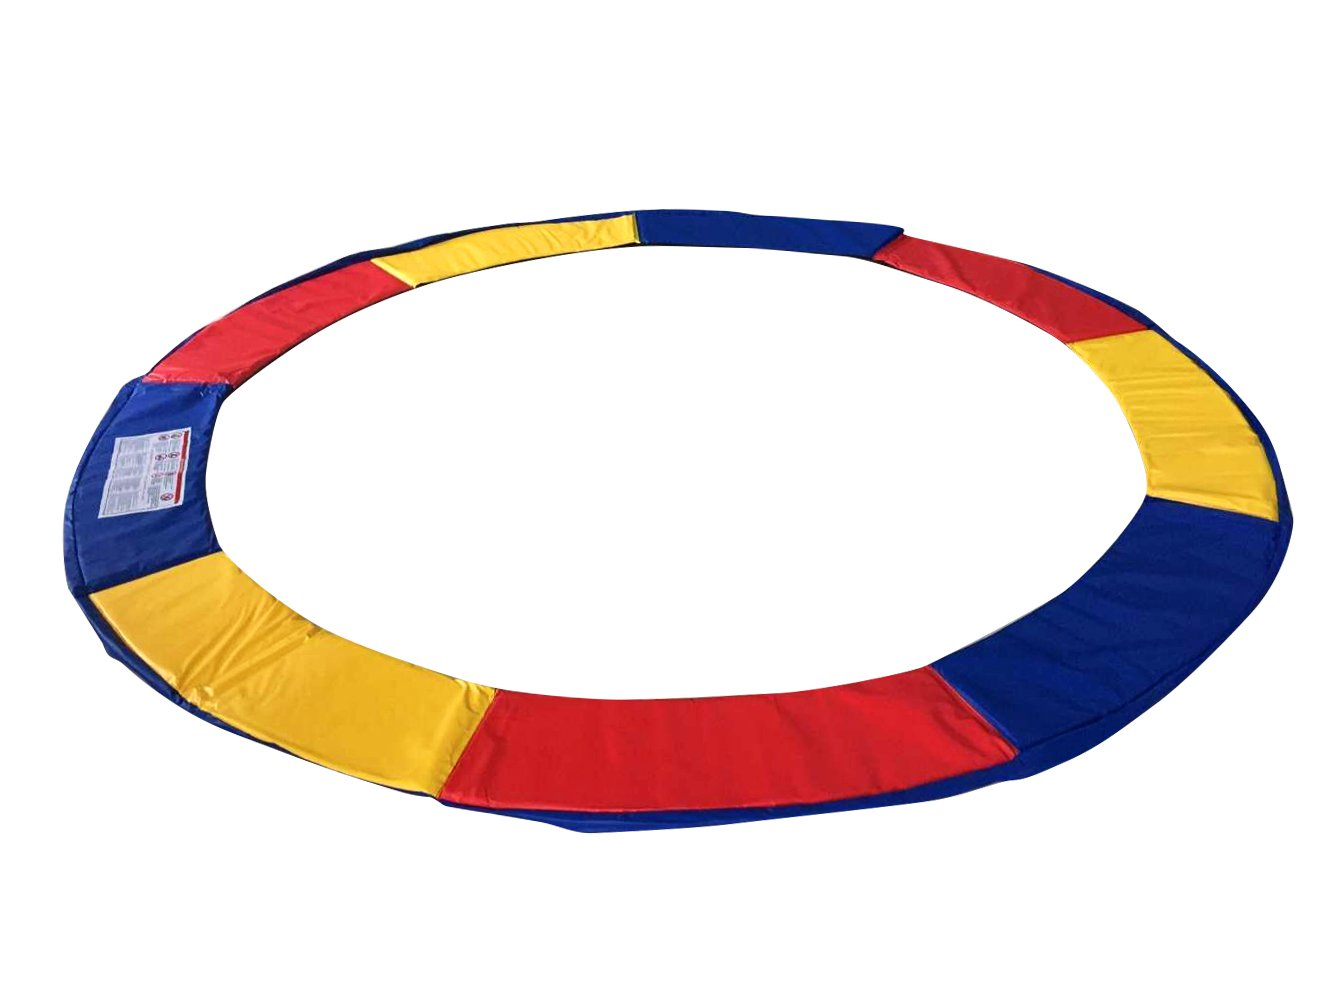 Exacme Trampoline Replacement Safety Pad Frame Spring 10-16FT Colors Round Cover (16 FT) by Exacme